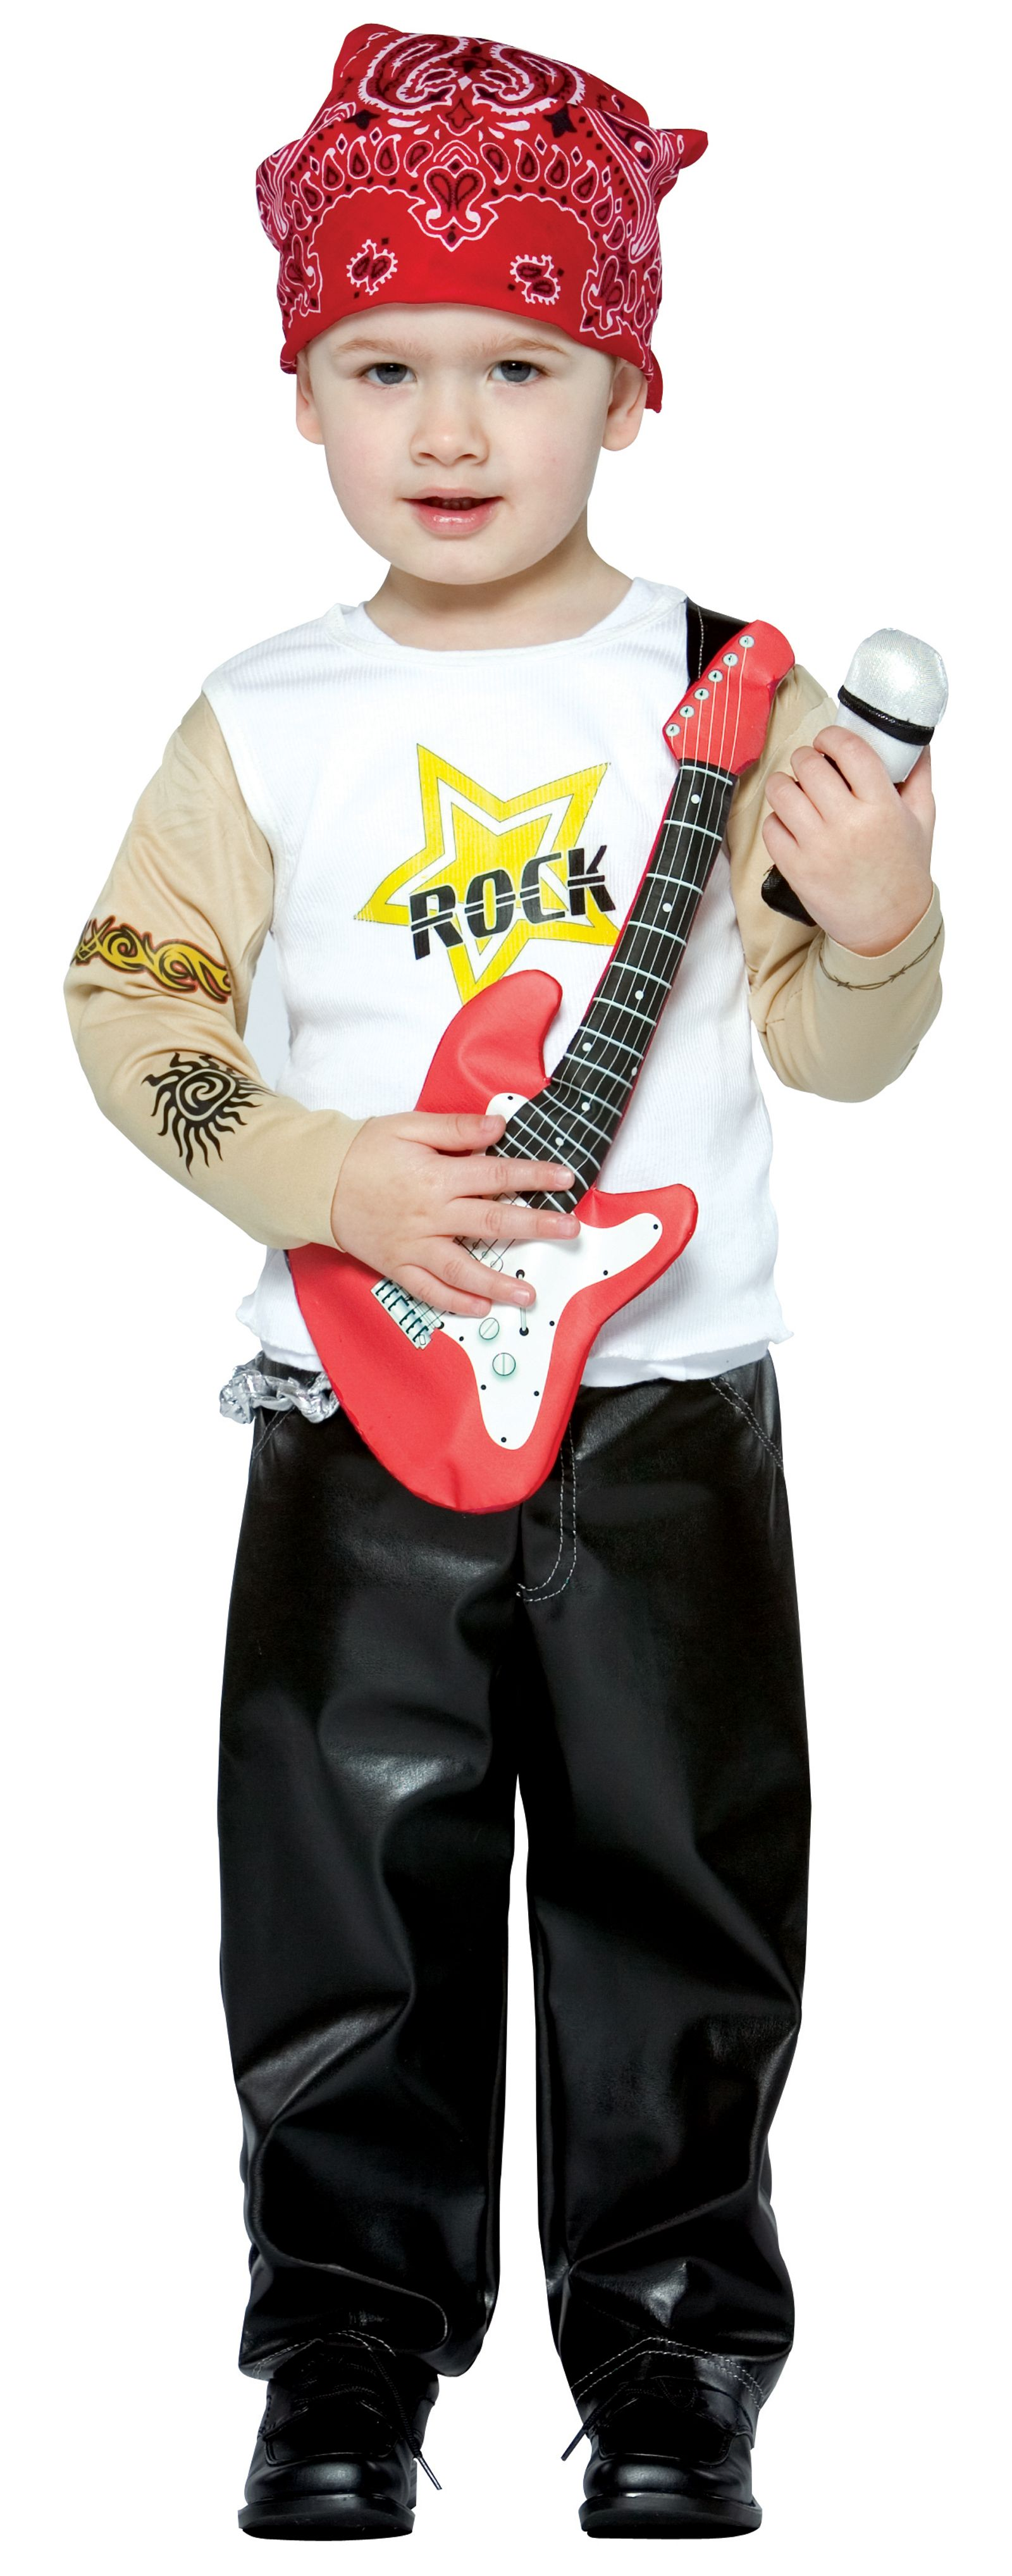 rocker costume toddler - Buscar con Google | Halloween costume for ...